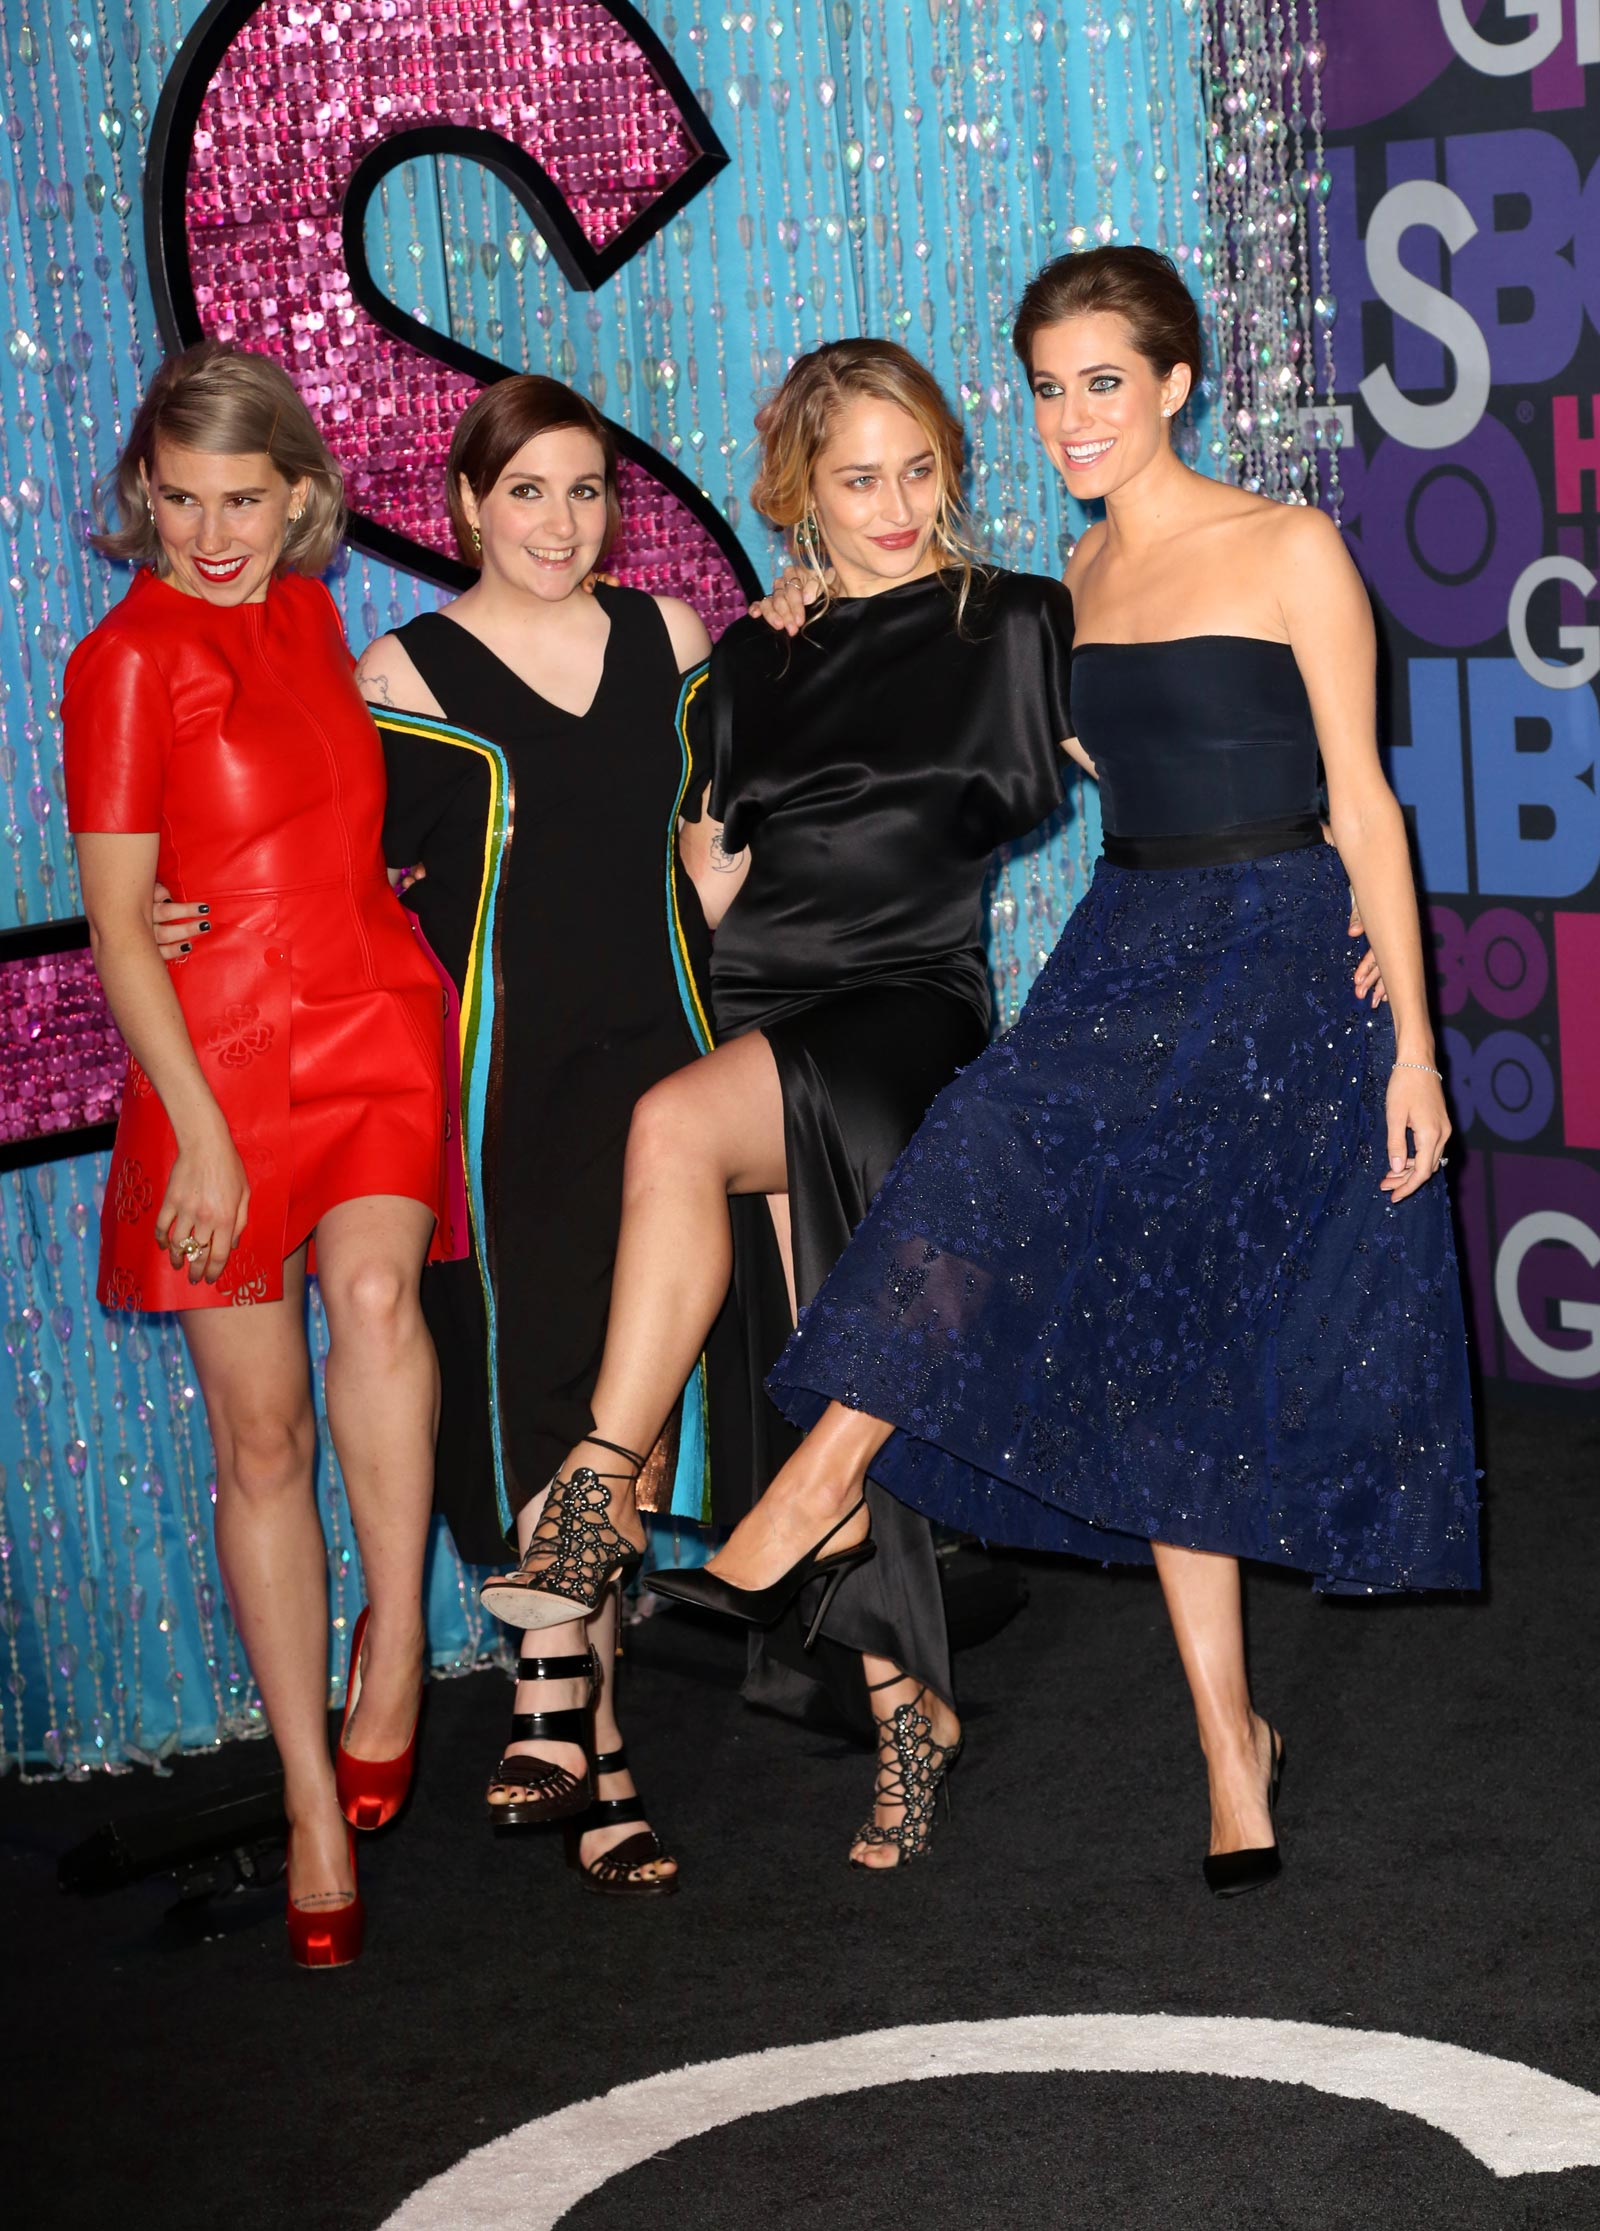 Zosia Mamet attends the fourth season premiere of Girls